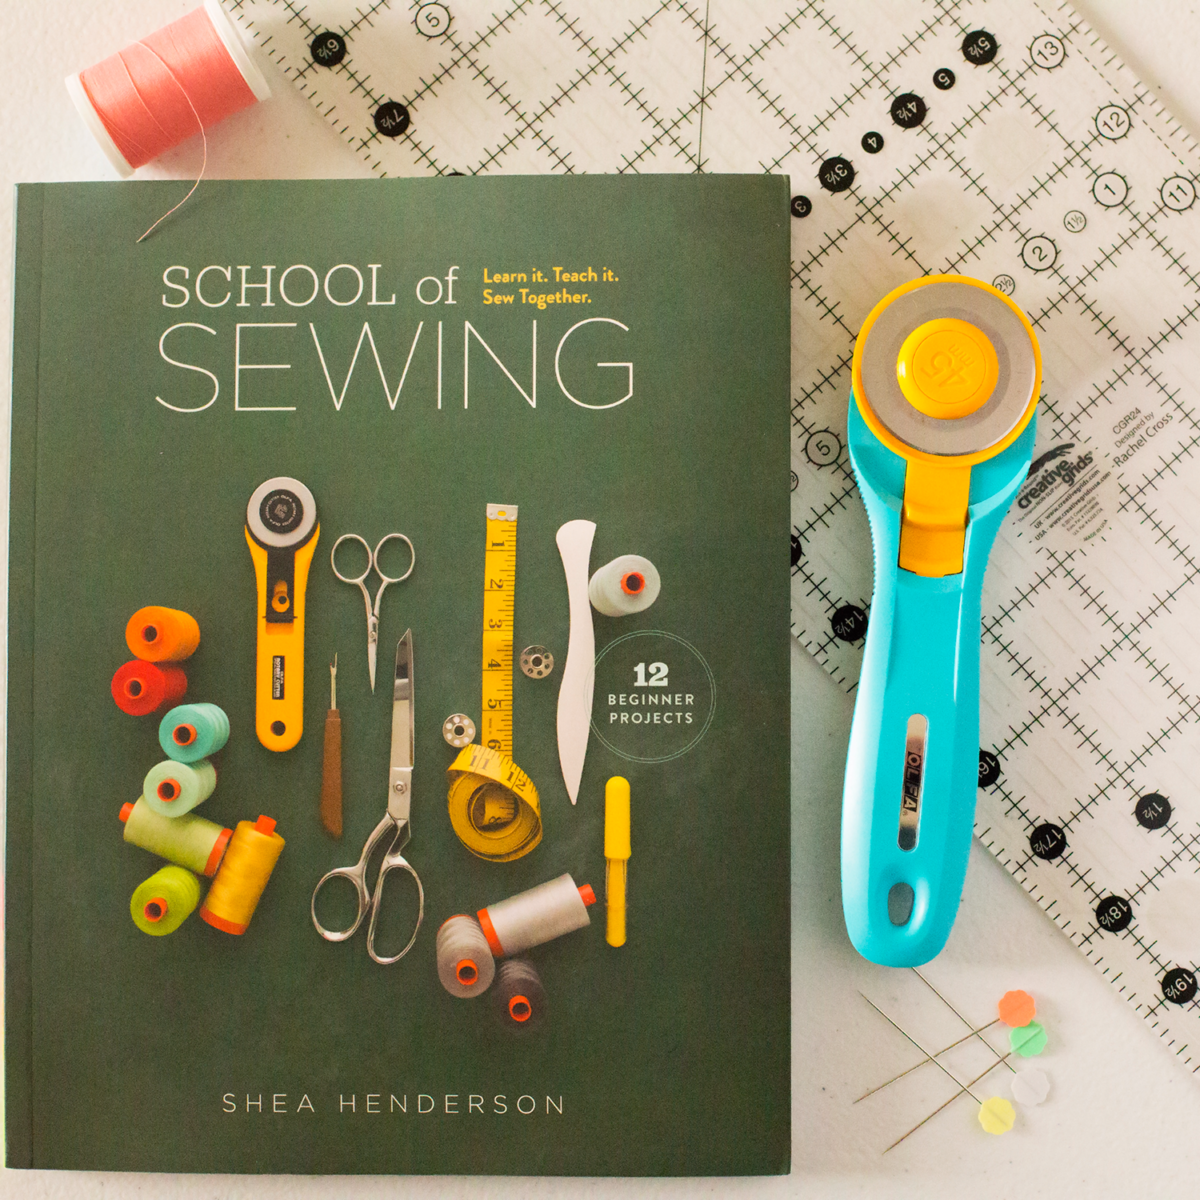 sewing machine classes for beginners